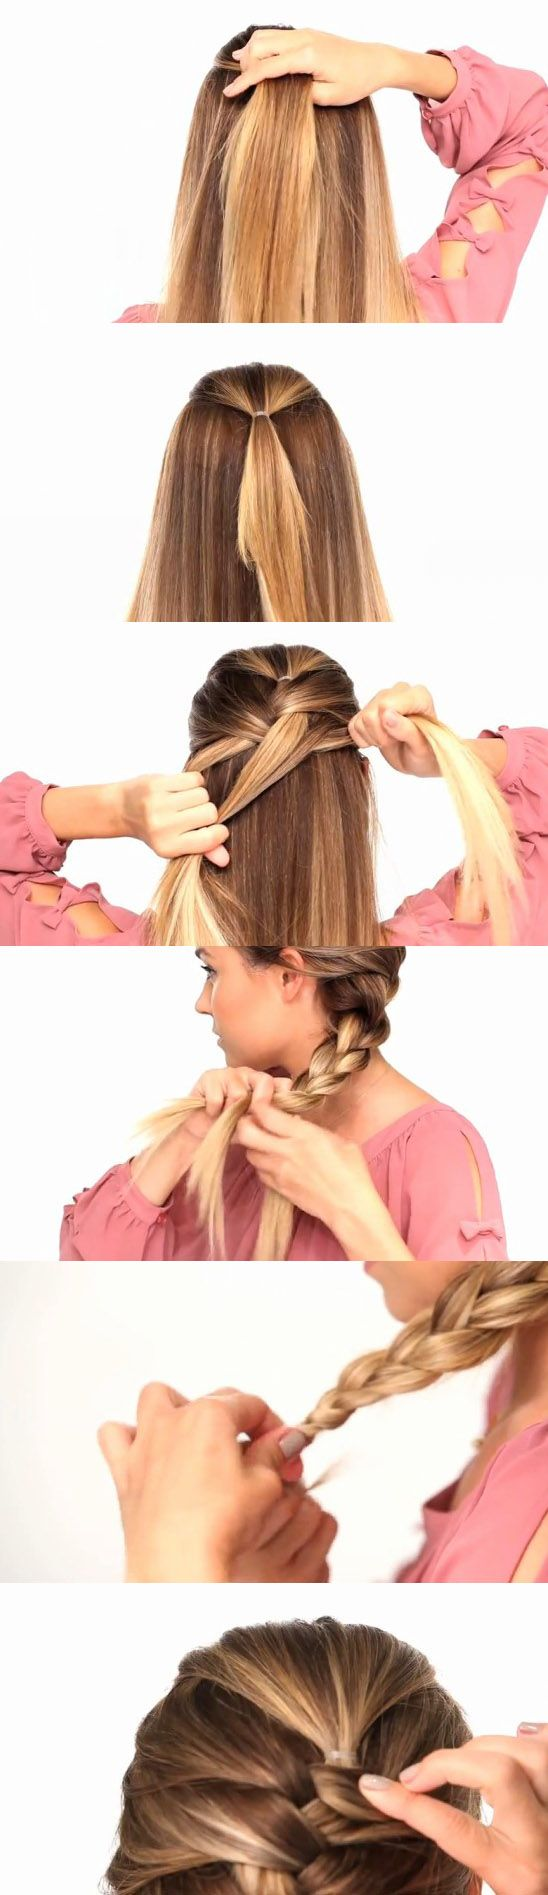 .Hair Ideas, Hairstyles, Easy, Braids Your Own Hair, Makeup, Beautiful, Hair Nails, Hair Style, How To Do A French Braids